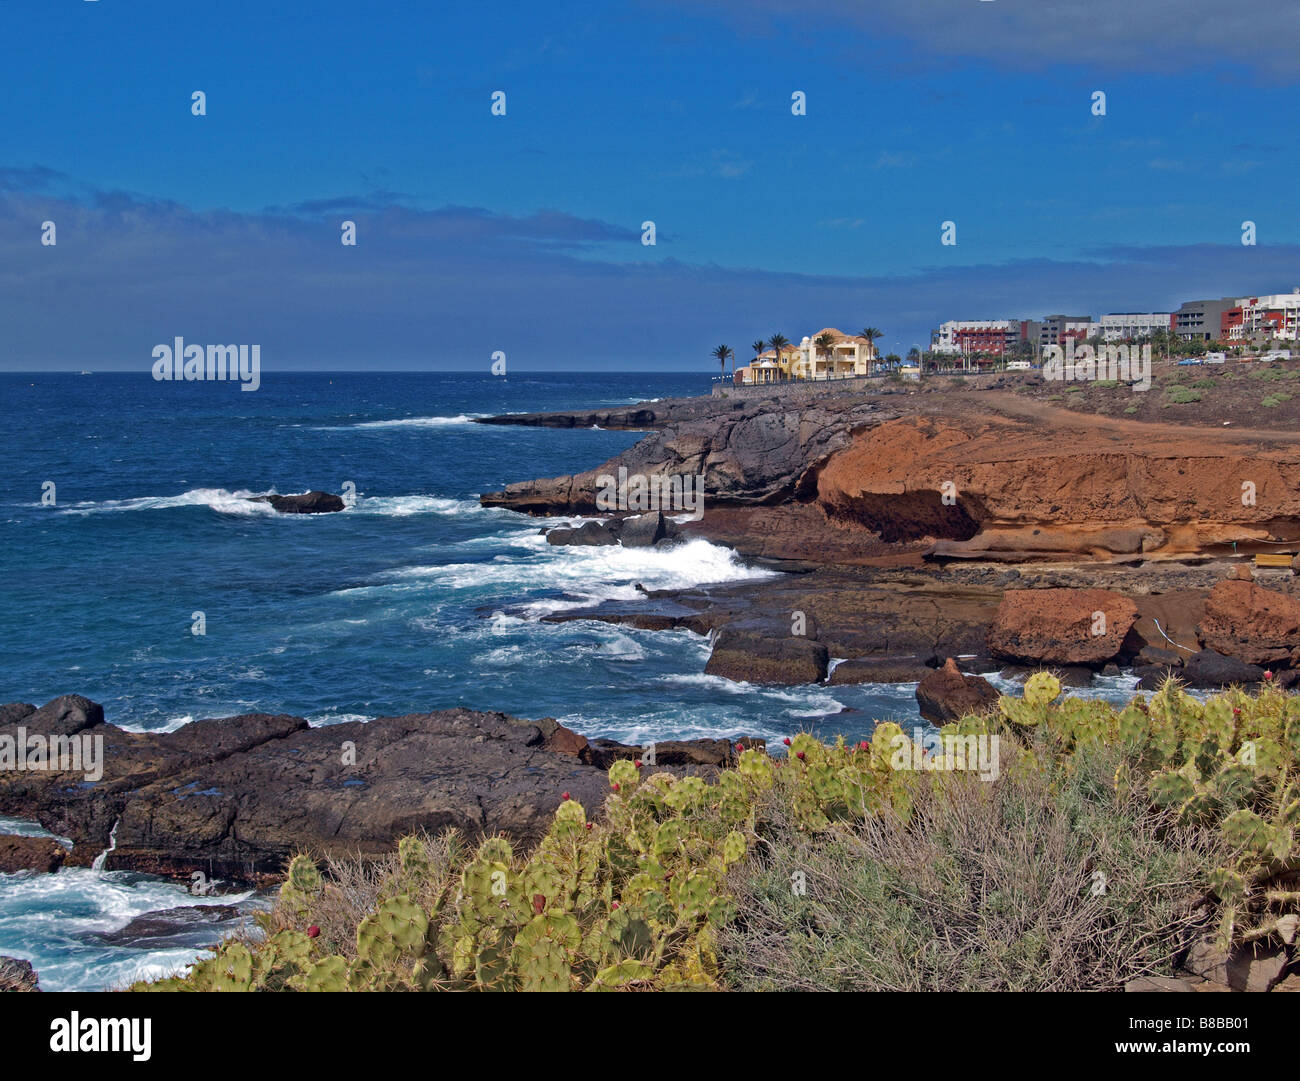 Sea braking on the volcanic rock coastline in Tenerife with houses on the top of the cliff. - Stock Image